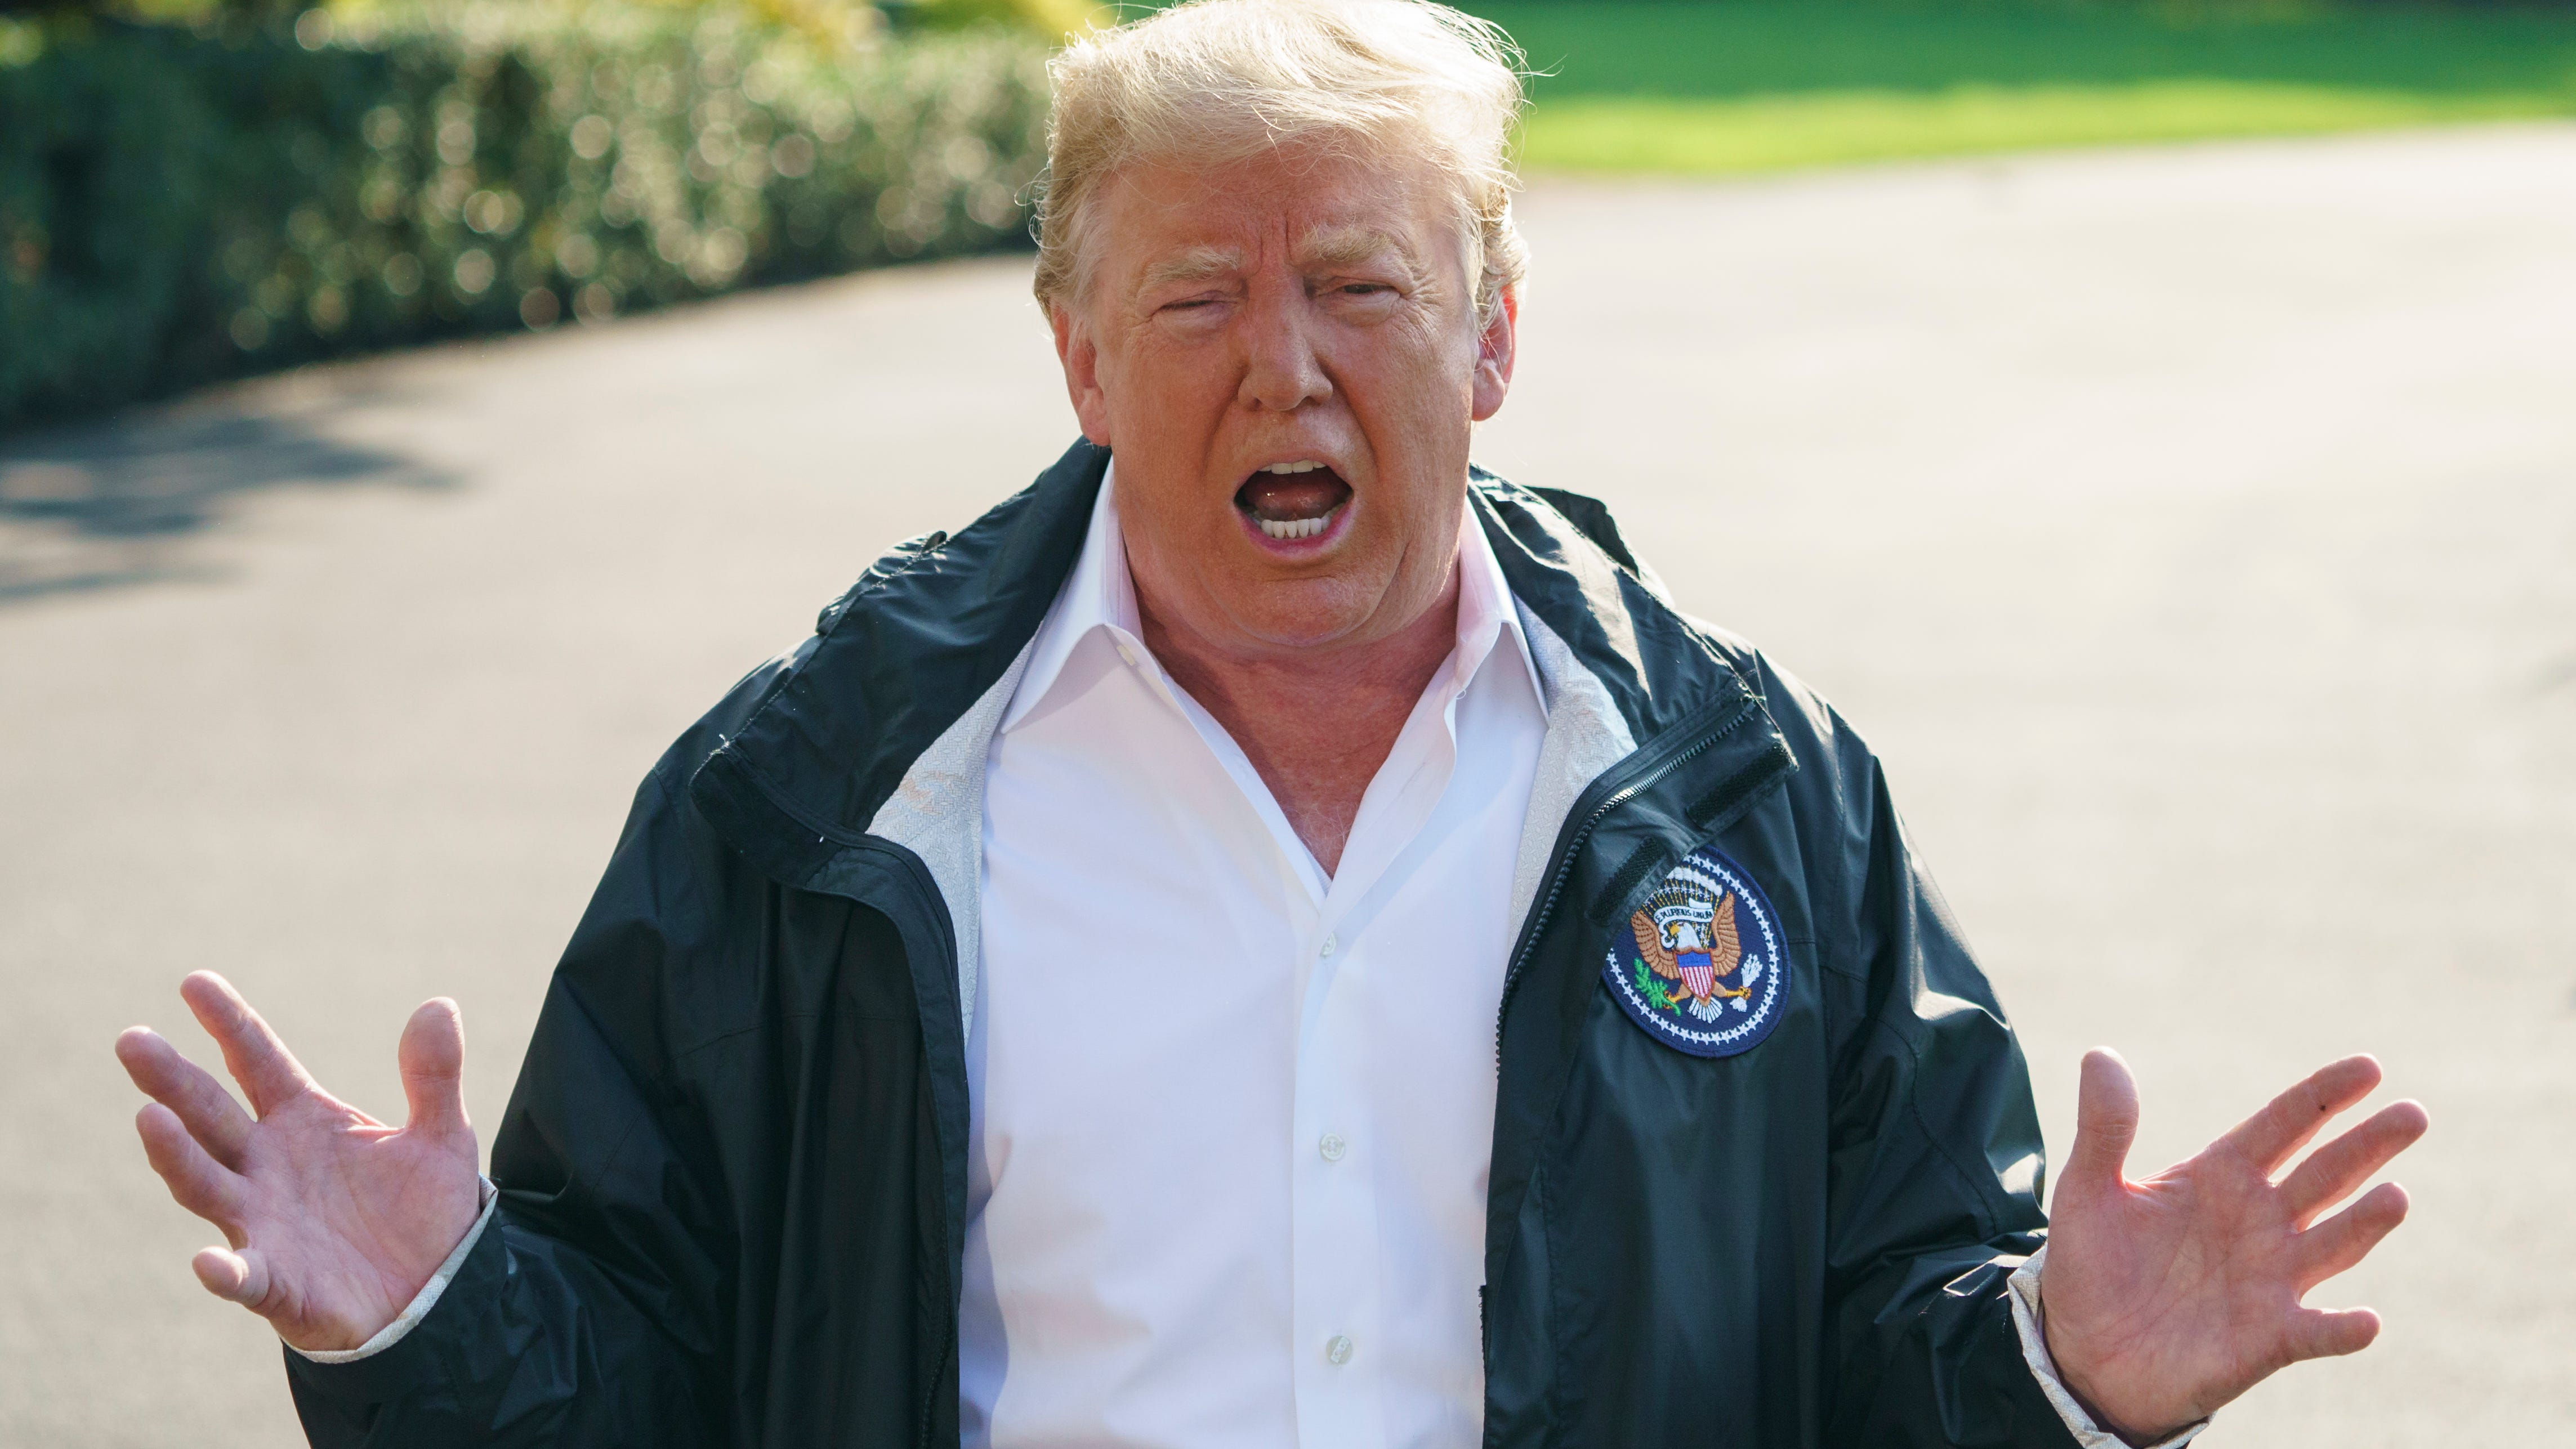 President Donald Trump talks to media before boarding Marine One on the South Lawn of the White House in Washington, Wednesday, Sept. 19, 2018, for the short trip to Andrews Air Force Base en route to Havelock, N.C. (AP Photo/Carolyn Kaster) ORG XMIT: DCCK101